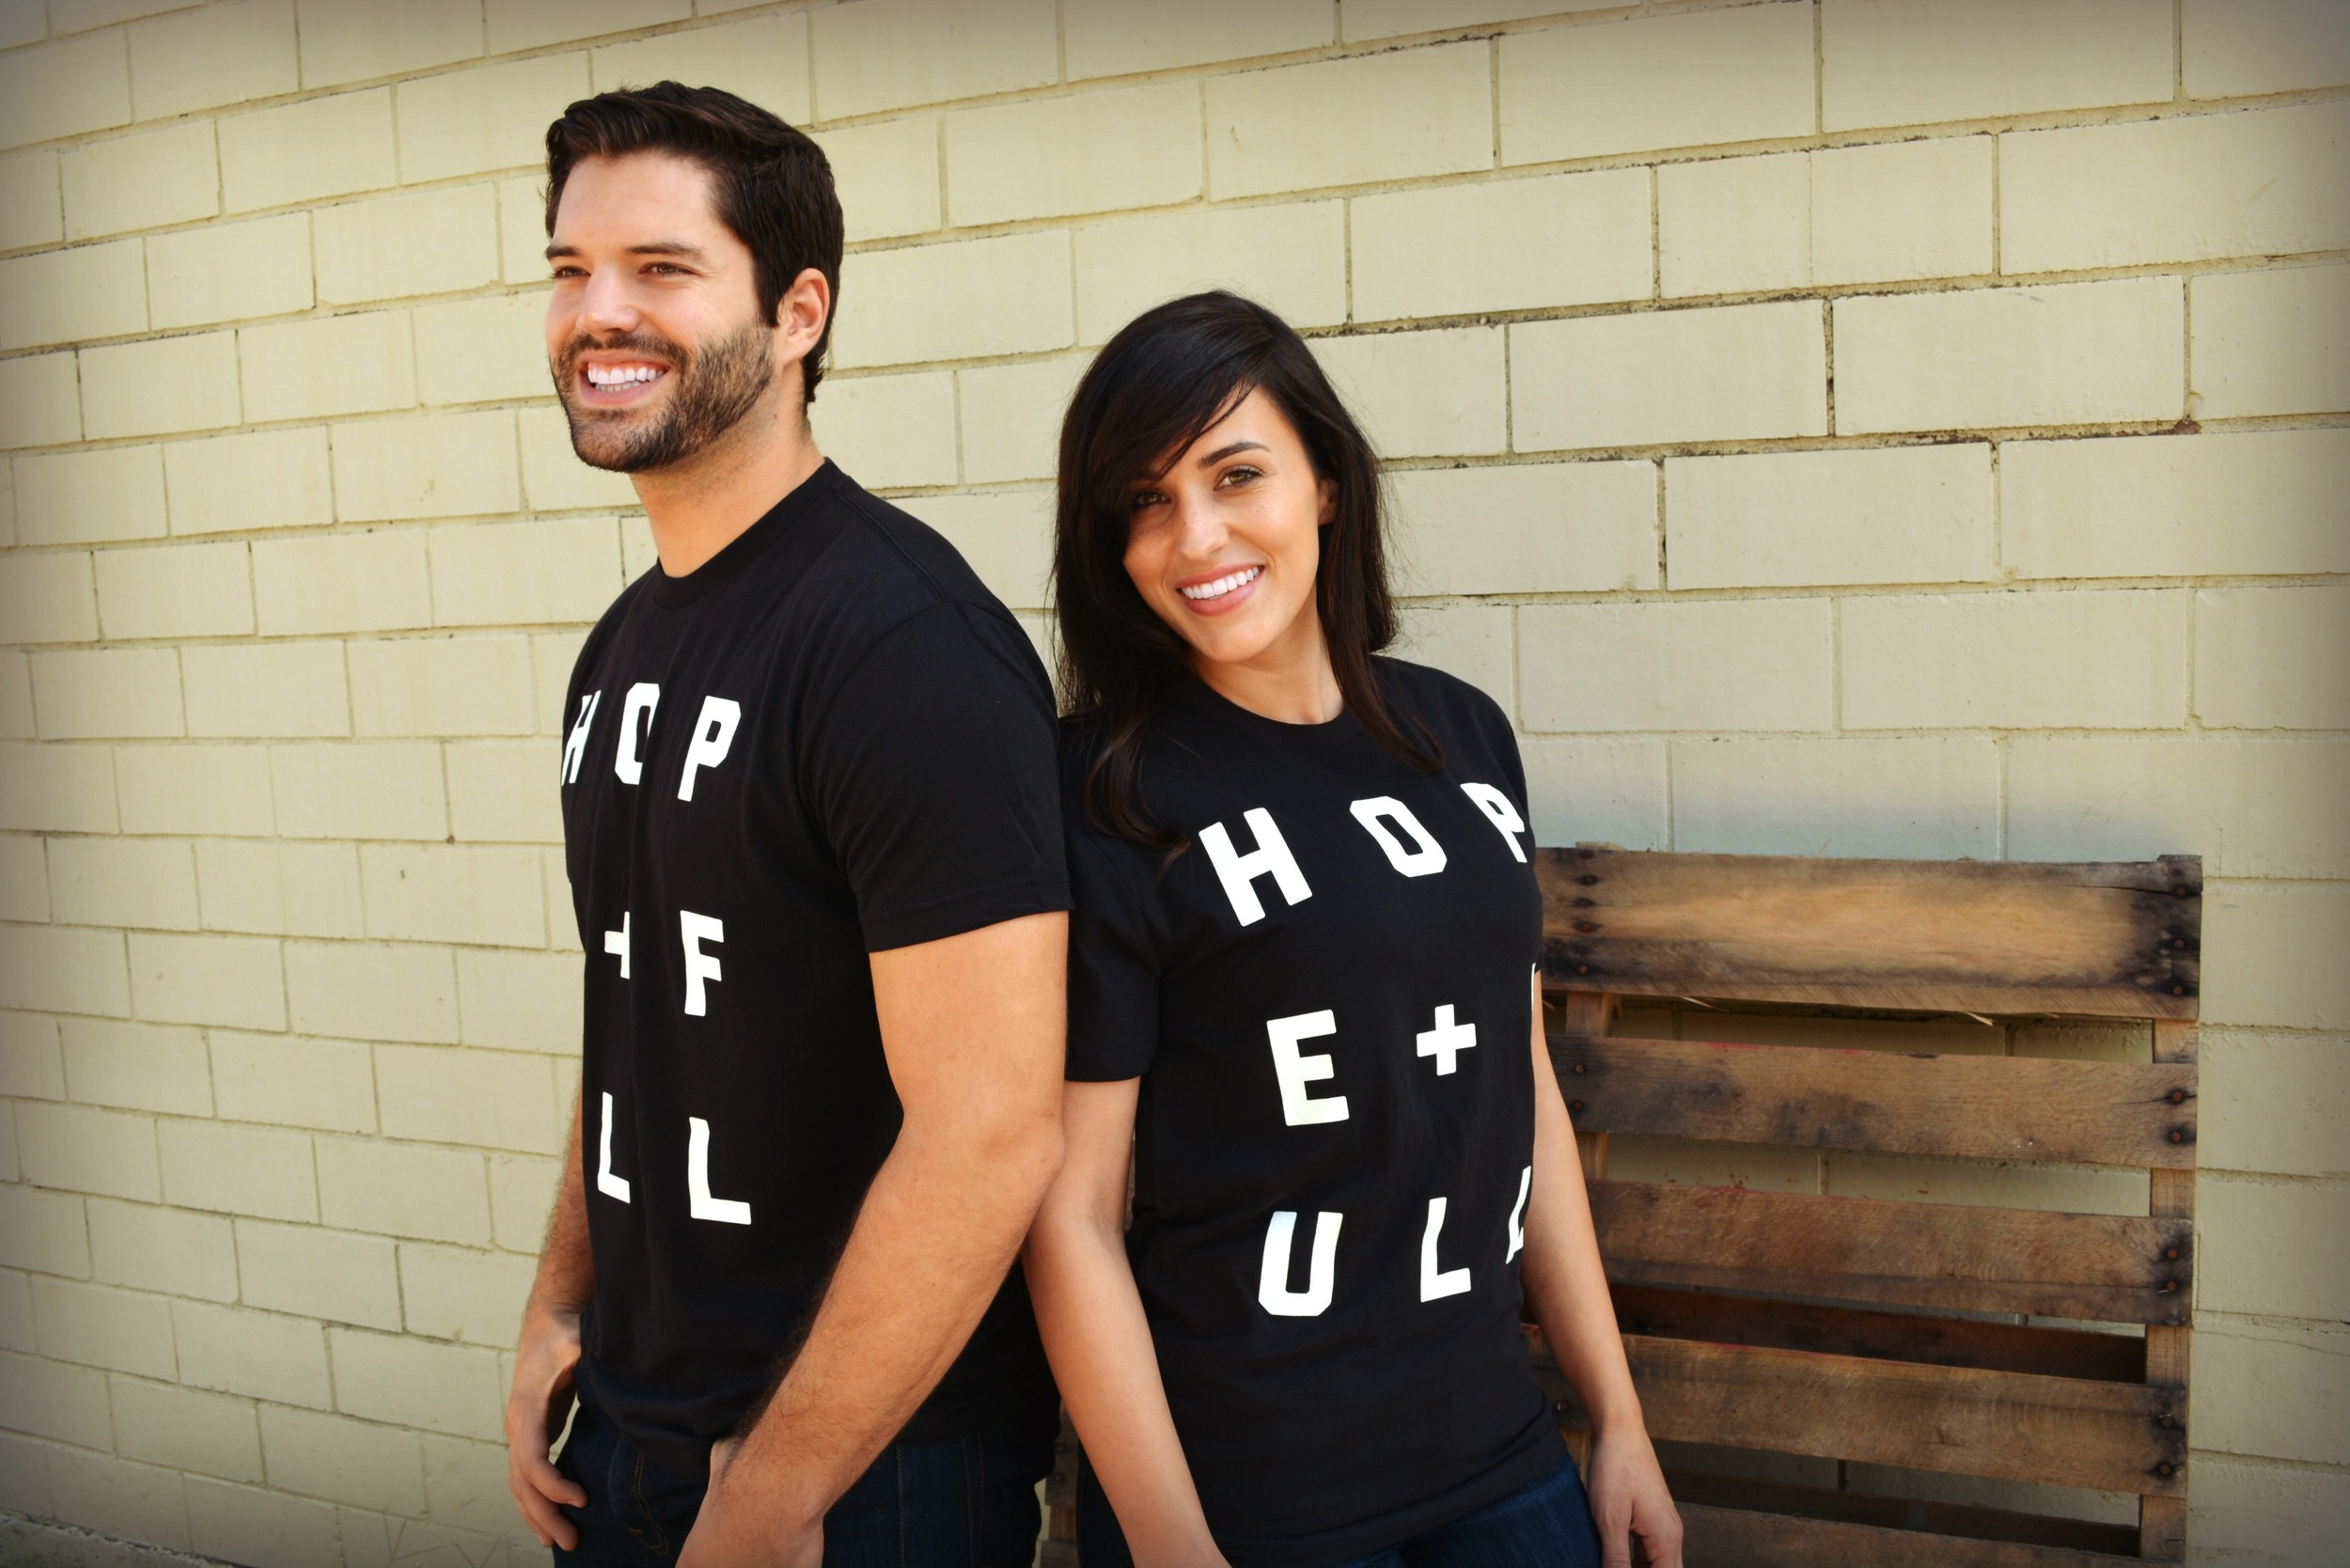 unisex black hopefull.jpg